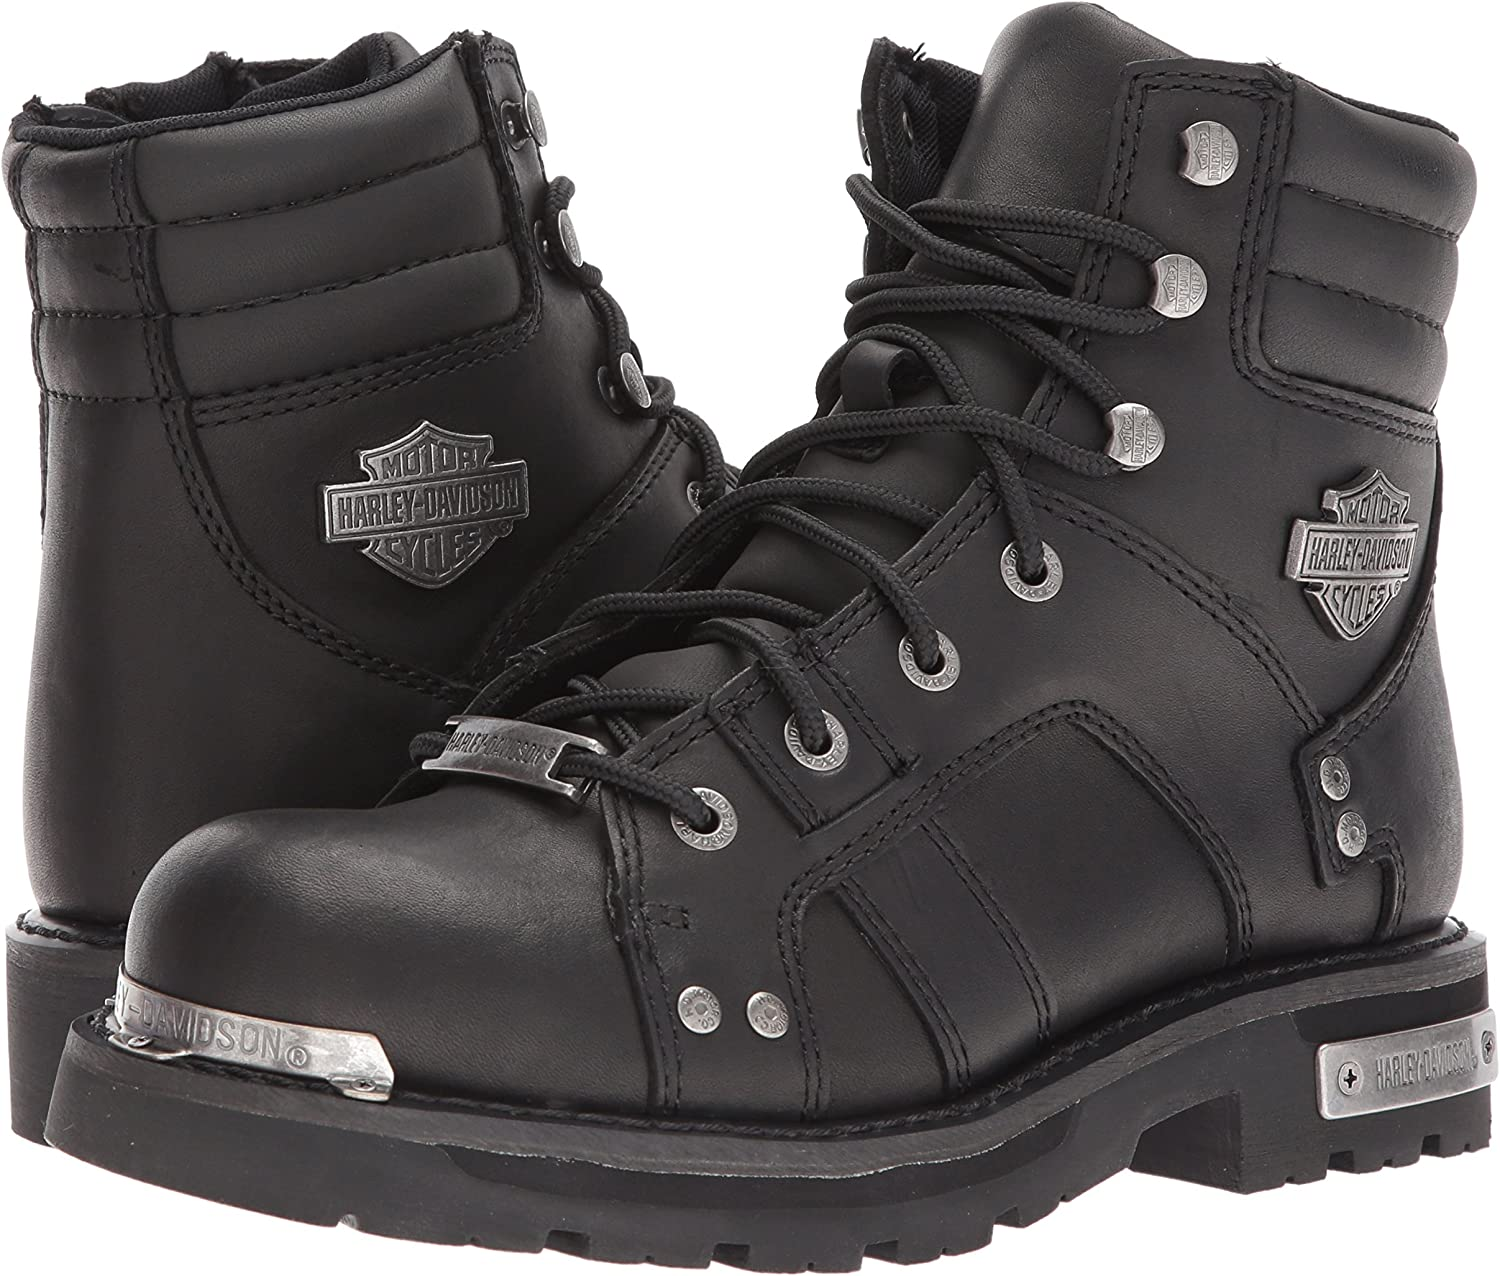 HARLEY-DAVIDSON FOOTWEAR Mens Bonfield Motorcycle Boot